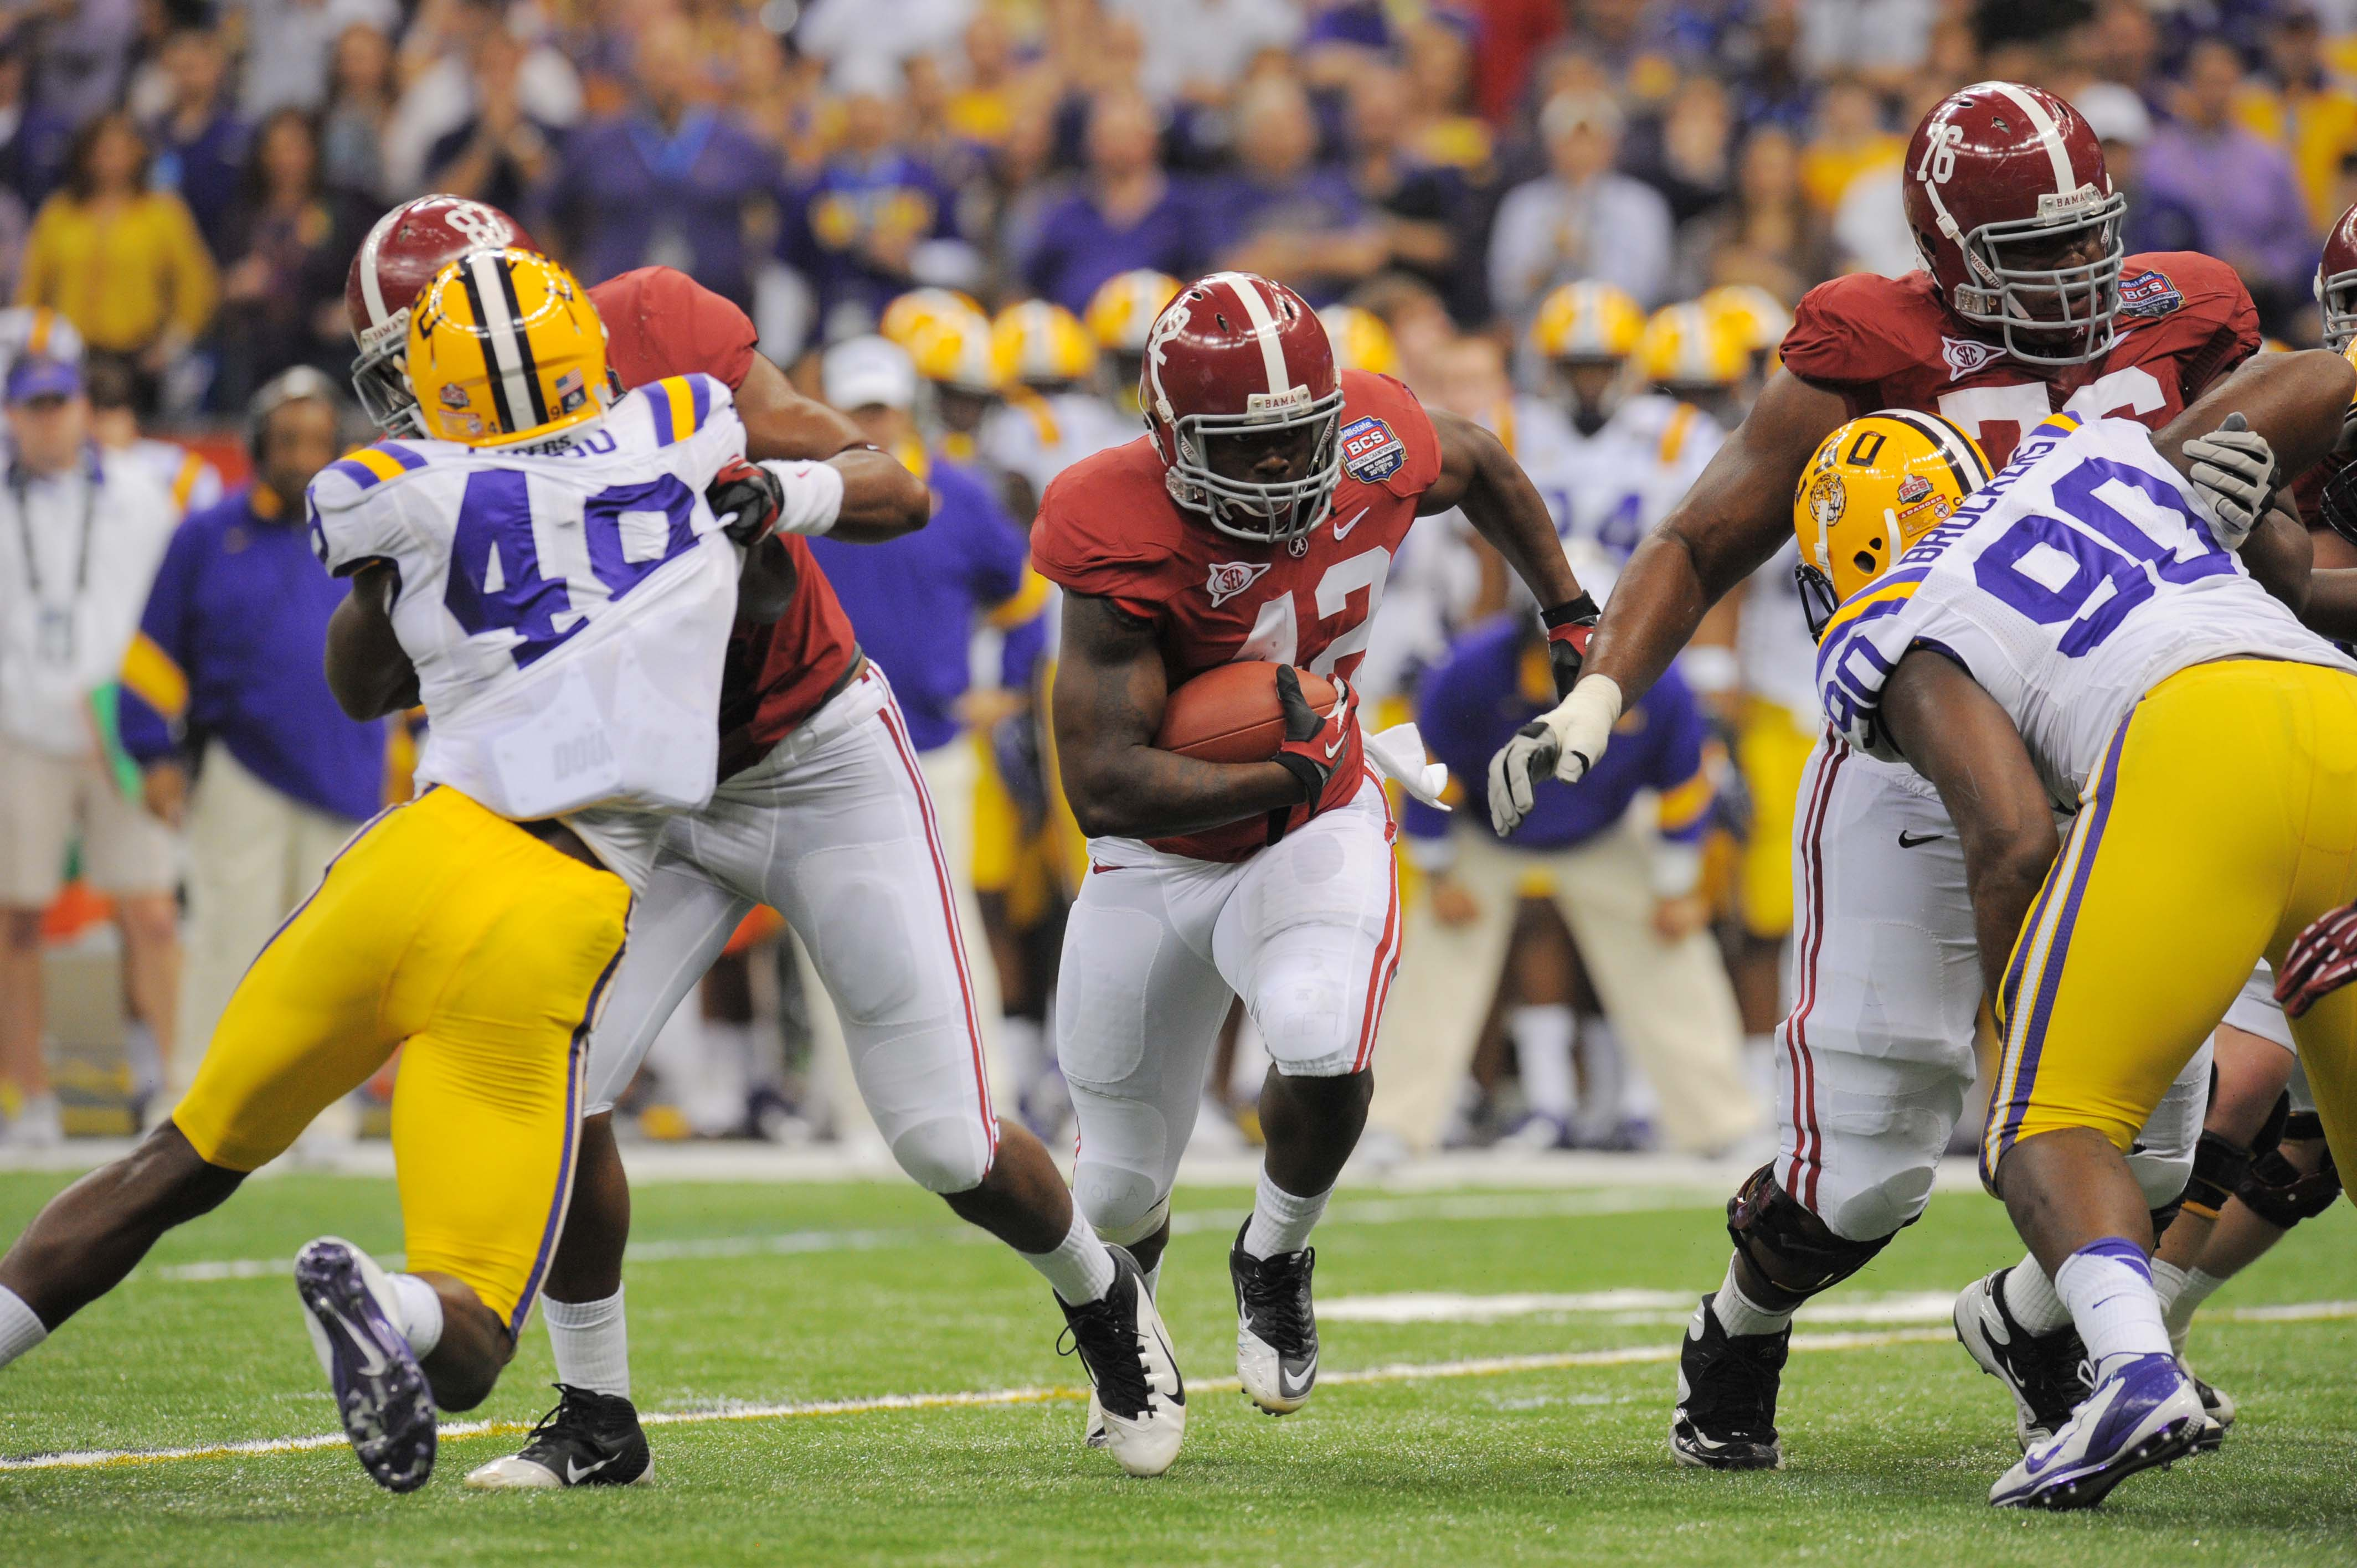 Lsu Football News Images Crazy Gallery 4256x2832